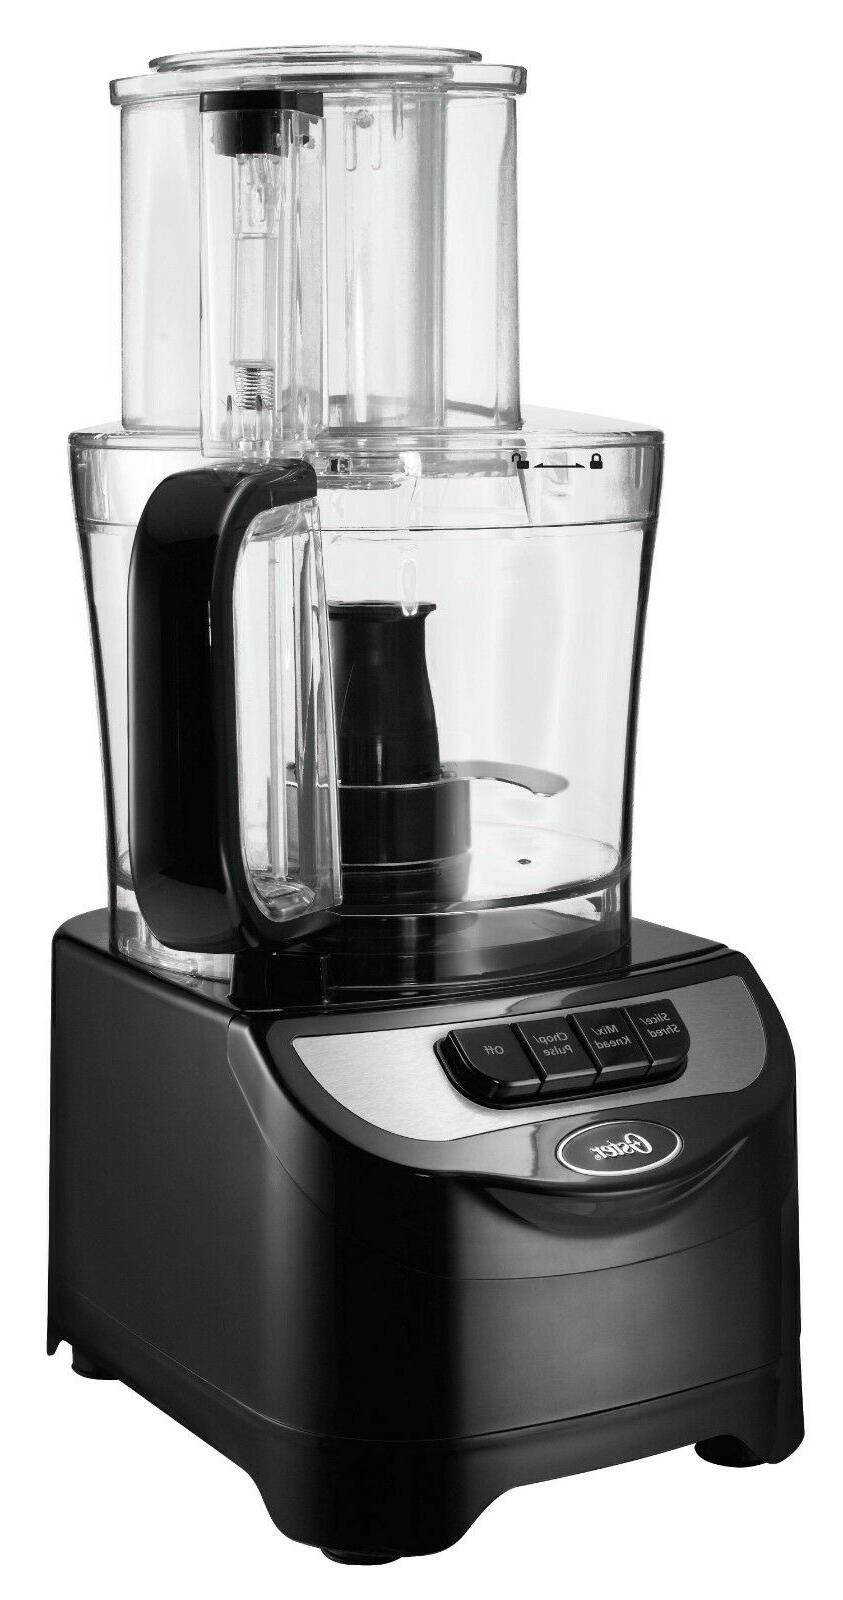 Oster 2-Speed Food Processor, 10-Cup Capacity